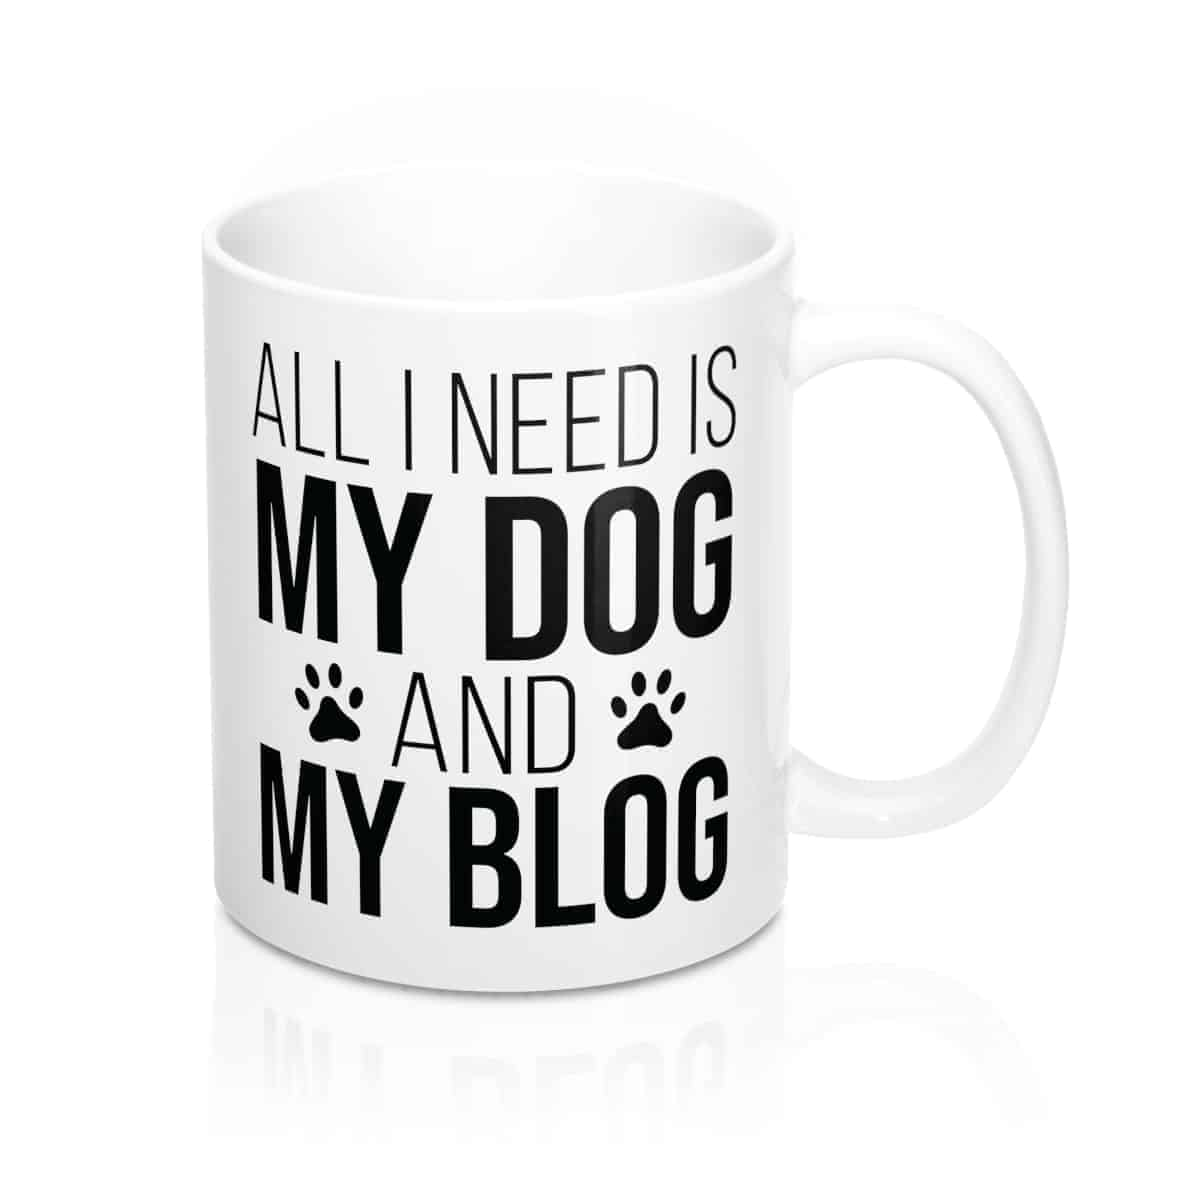 Personalized Mug For Bloggers & Dog Moms